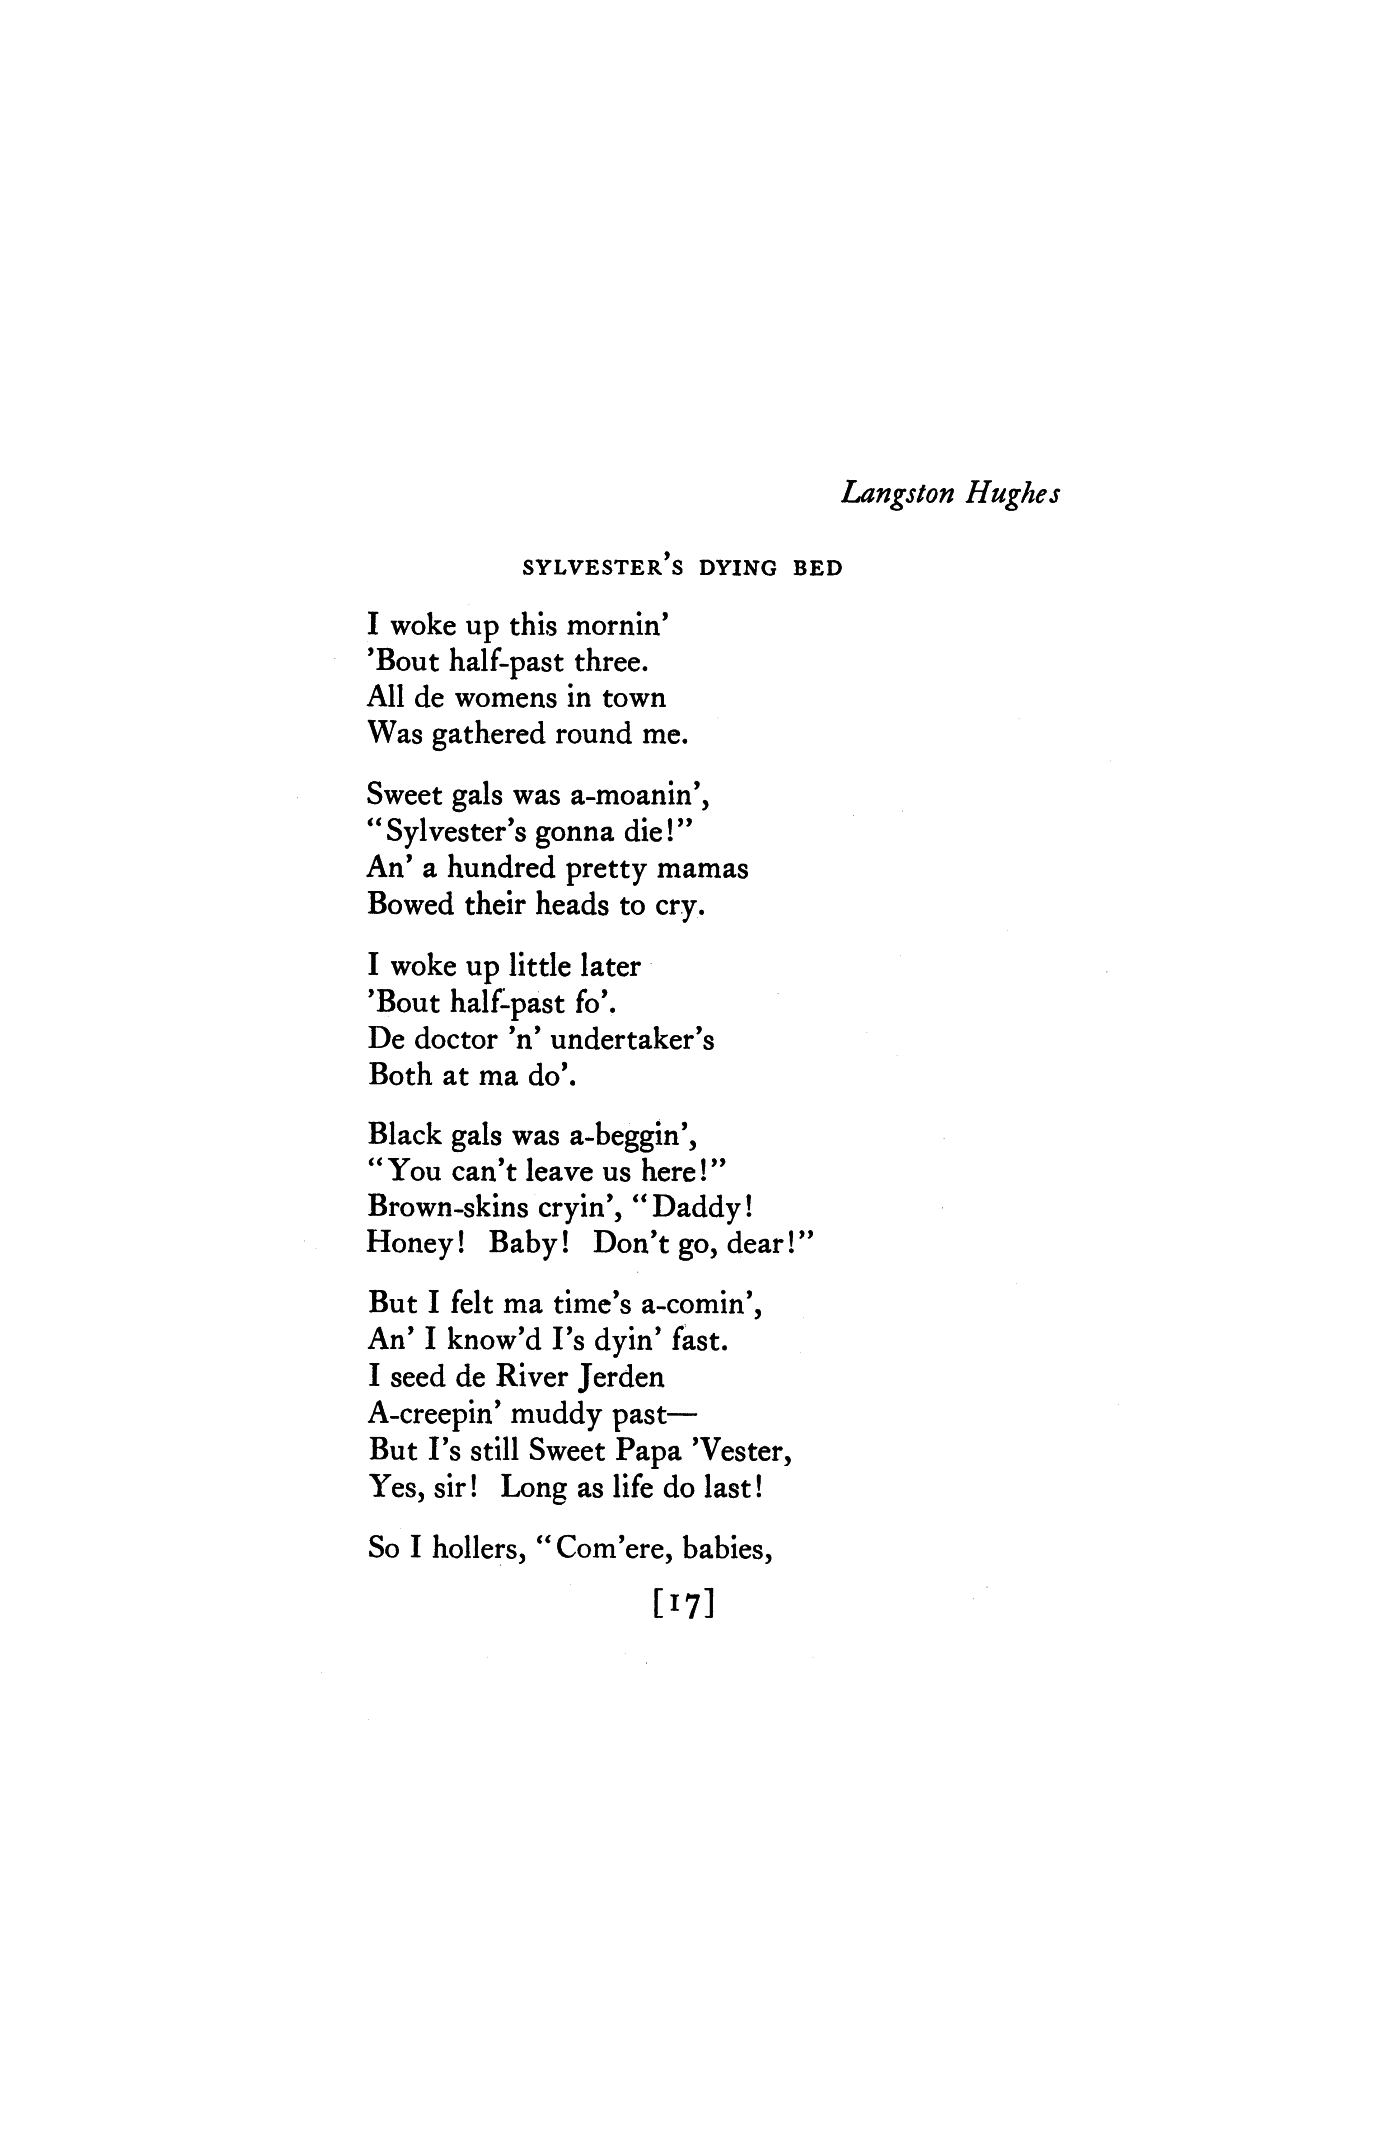 Sylvester's Dying Bed by Langston Hughes | Poetry Magazine